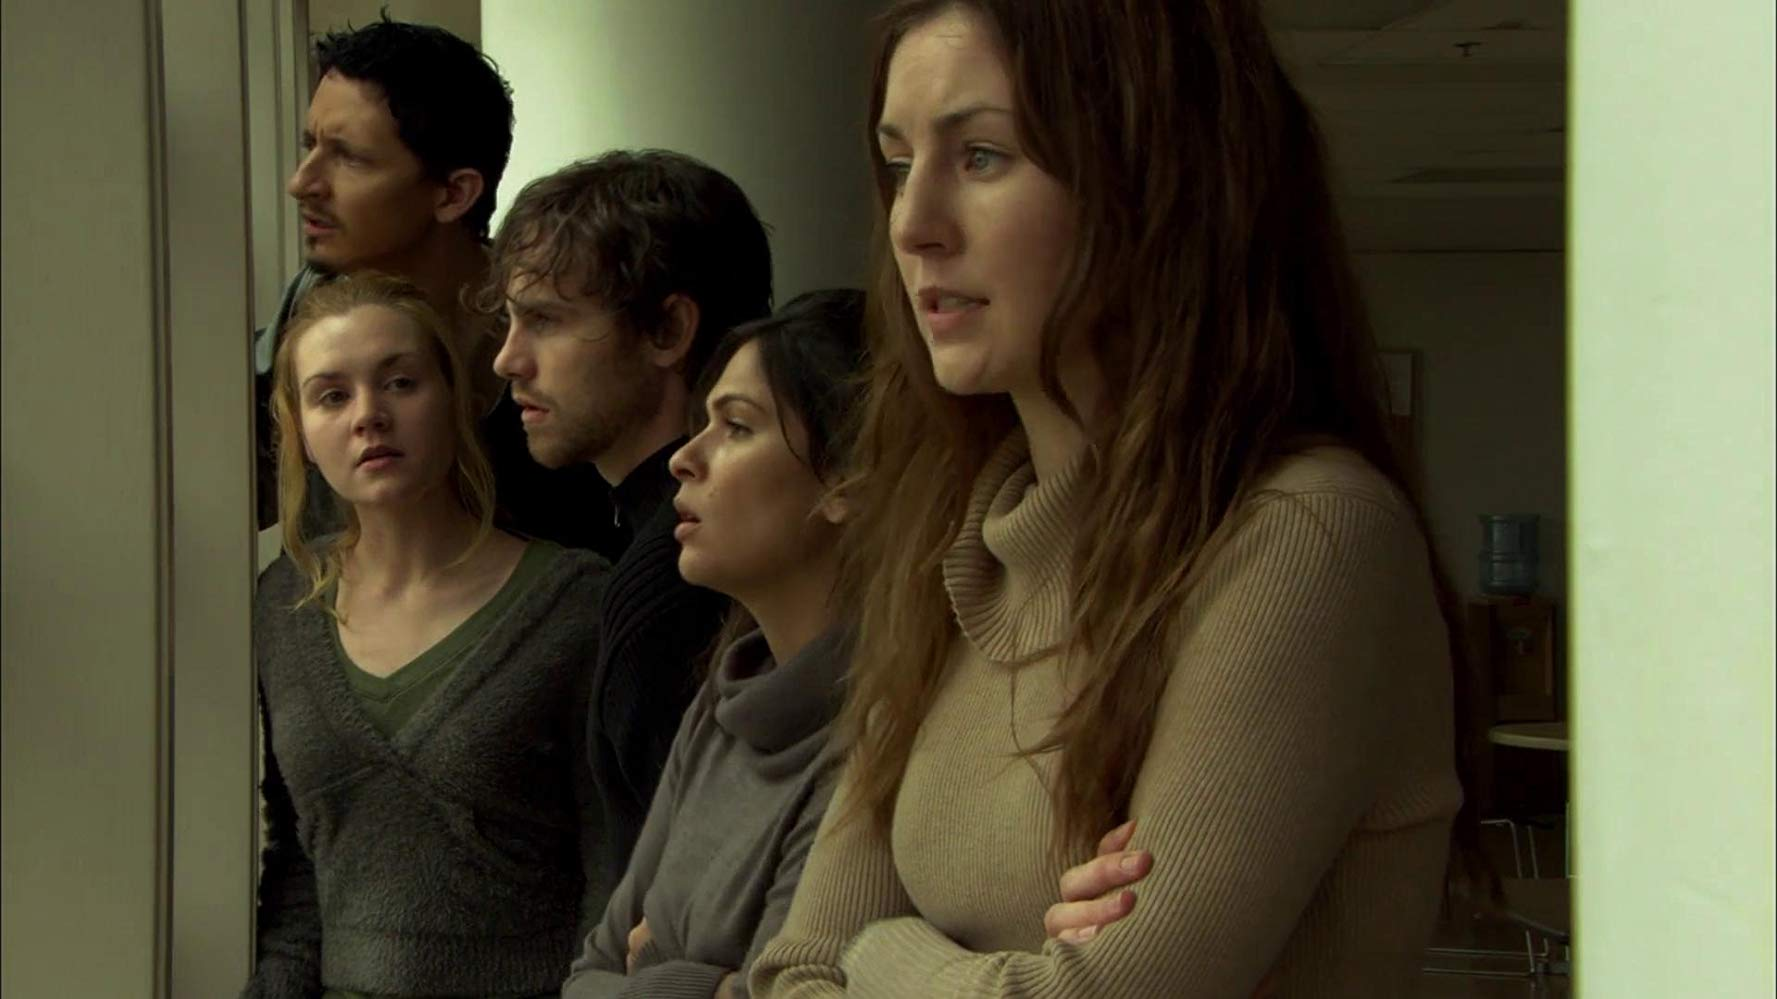 The survivors - (l to r) Zack Robidas, Rachel Miner, Rider Strong, Alexandra Barreto and Nicole DuPort in Tooth and Nail (2007)